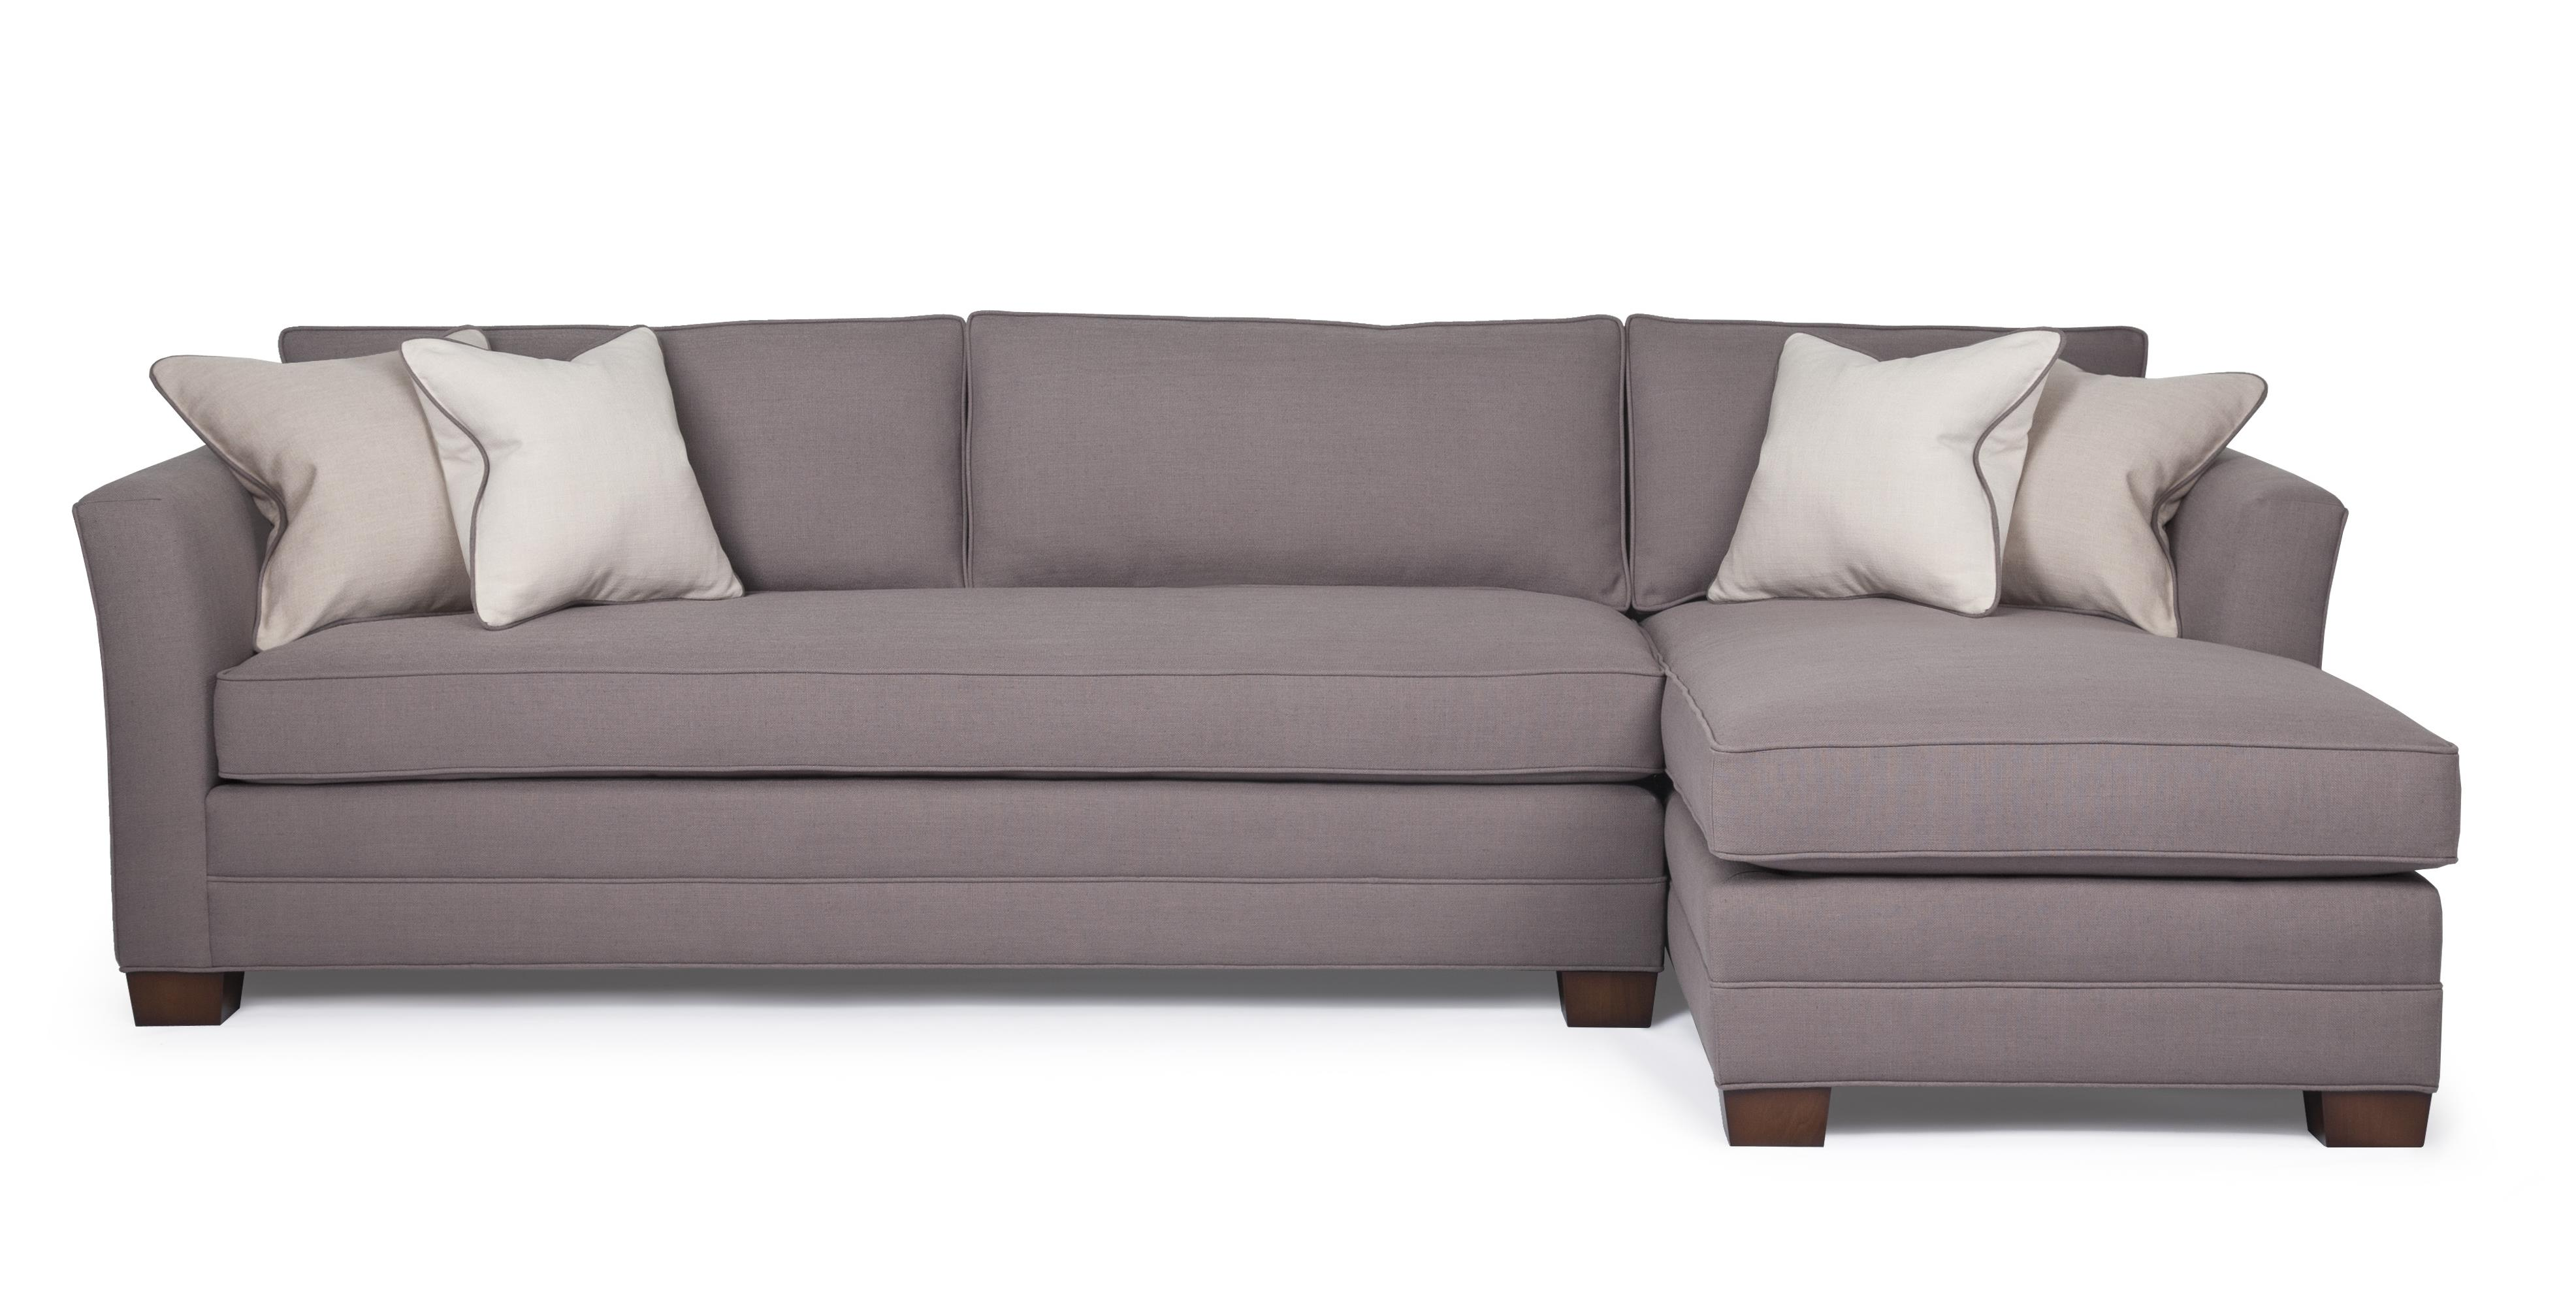 Sectional Sofa With Bench Cushion